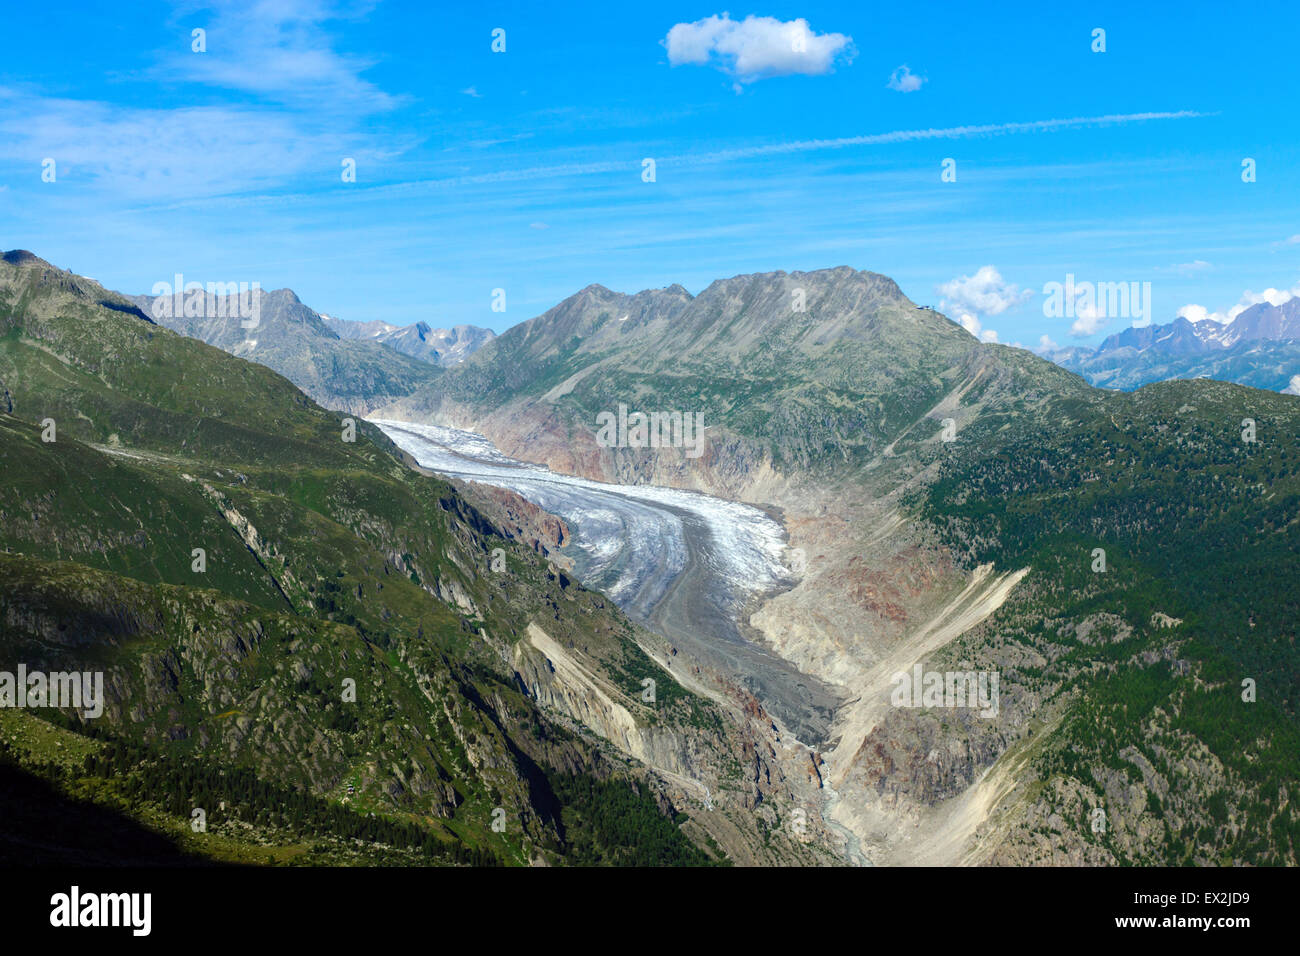 The impressing Aletsch glacier in the swiss alps - Stock Image